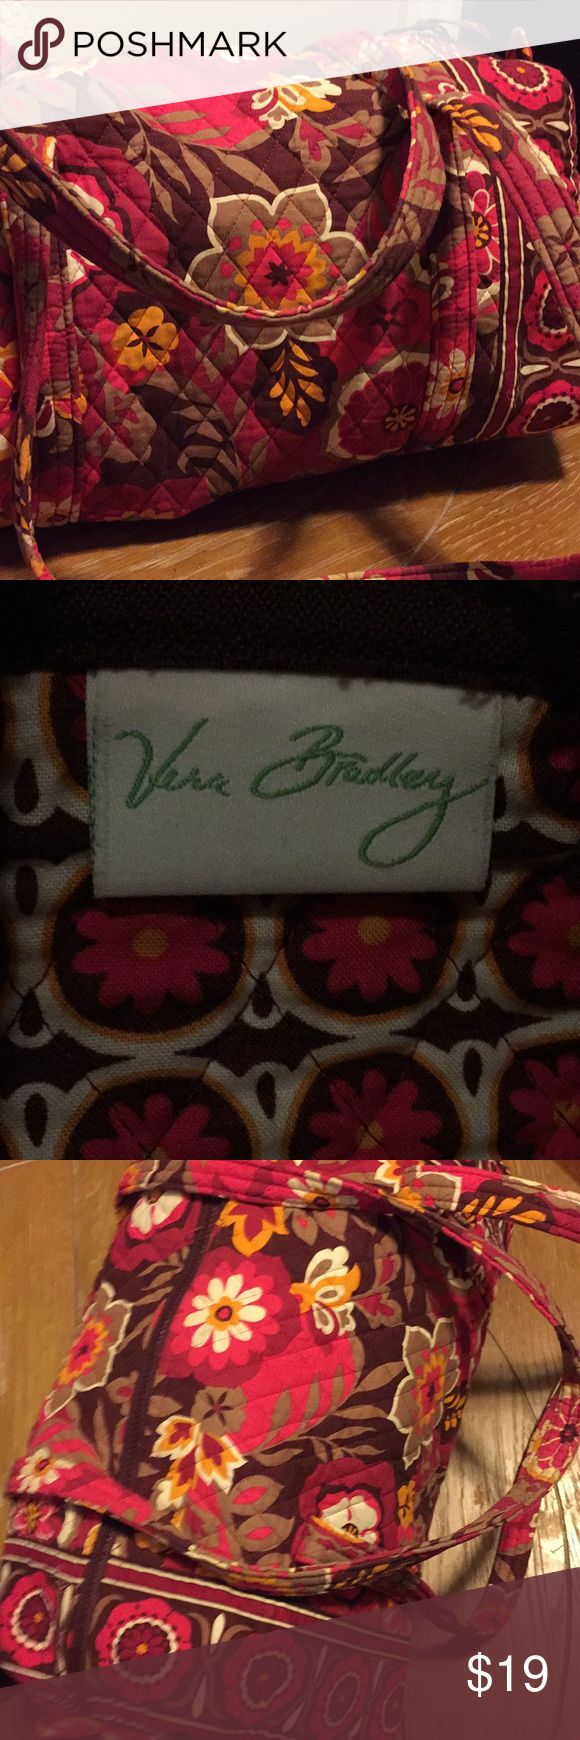 Small sized Vera Bradley duffel bag Super soft and durable Vera Bradley small sized duffel bag. Make an offer ✨ Vera Bradley Bags Travel Bags